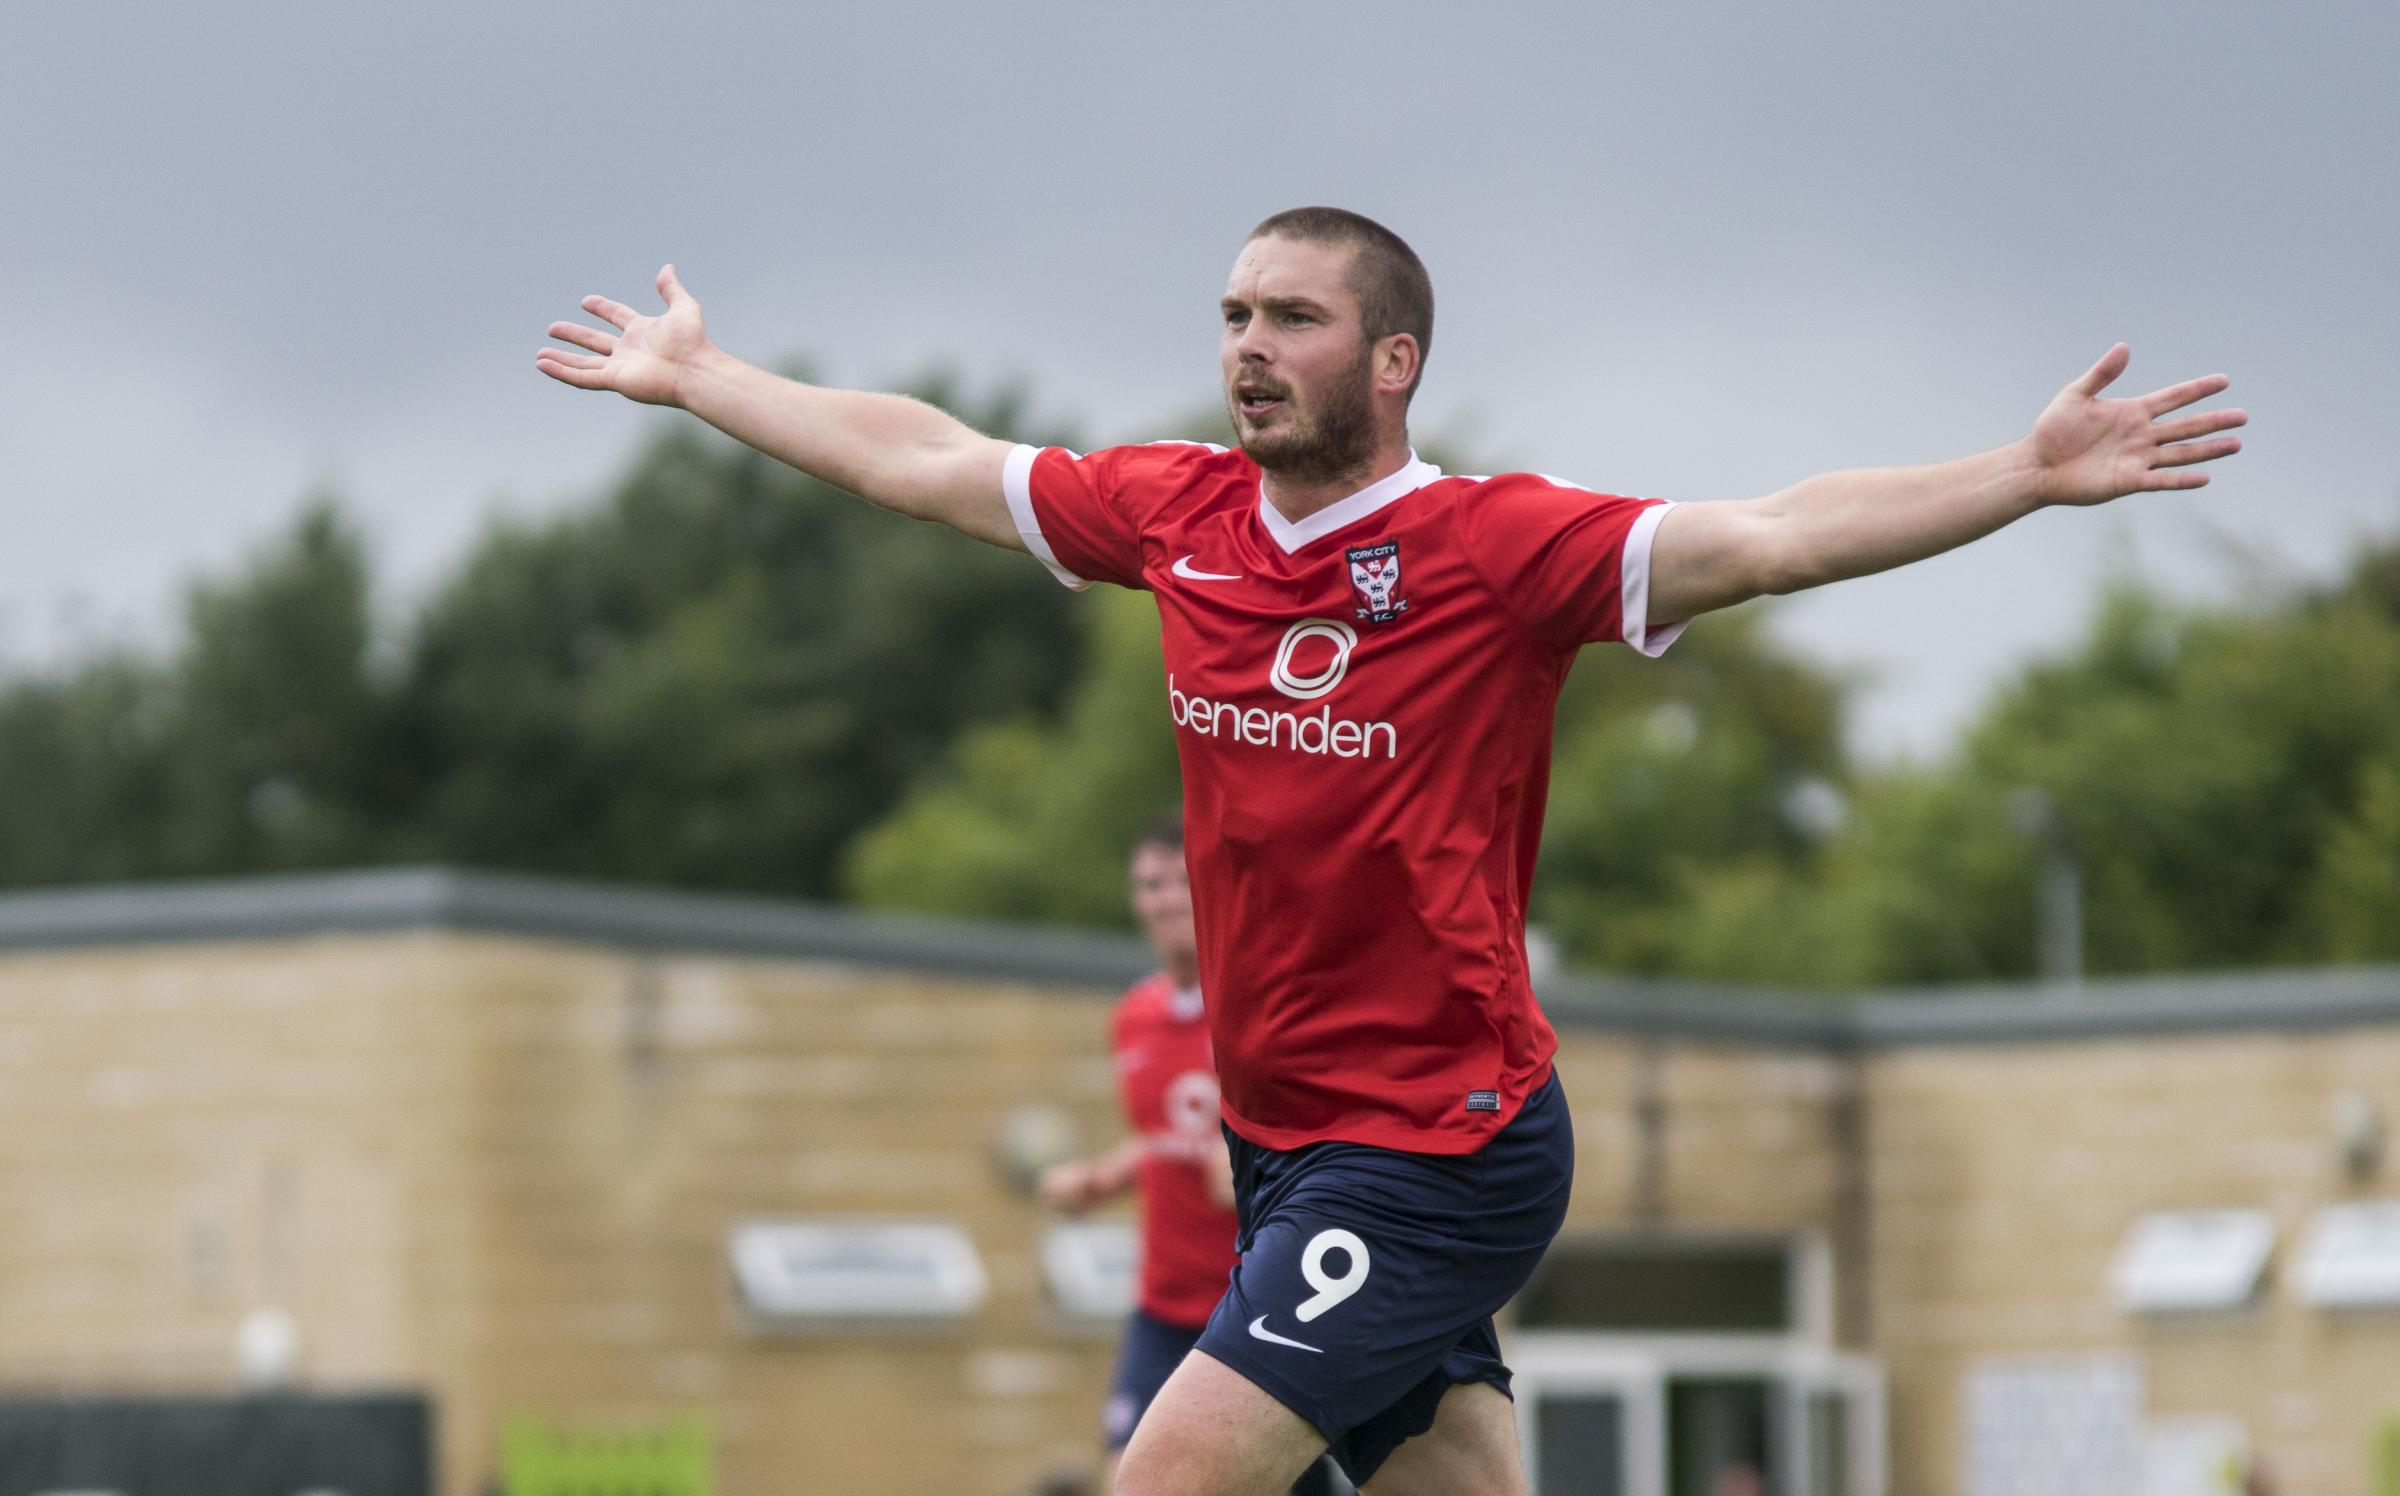 NO GO: Richard Brodie, pictured in his York City days, will not be signing for Darlington